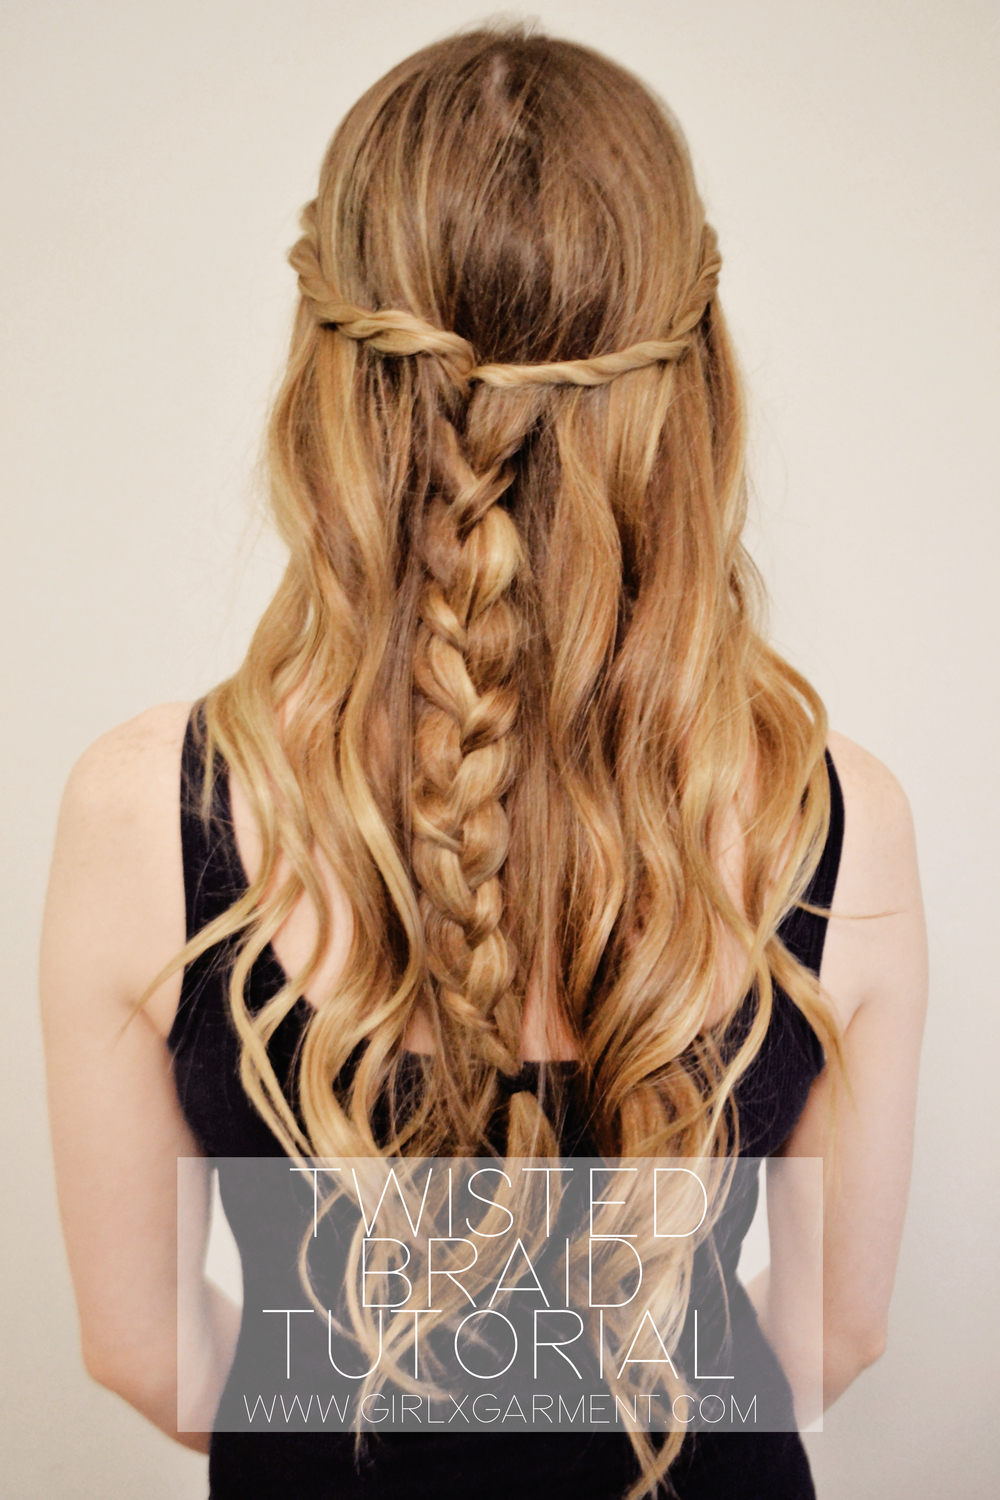 Game of Thrones Daenerys Inspired Hair Tutorial | Girl x Garment